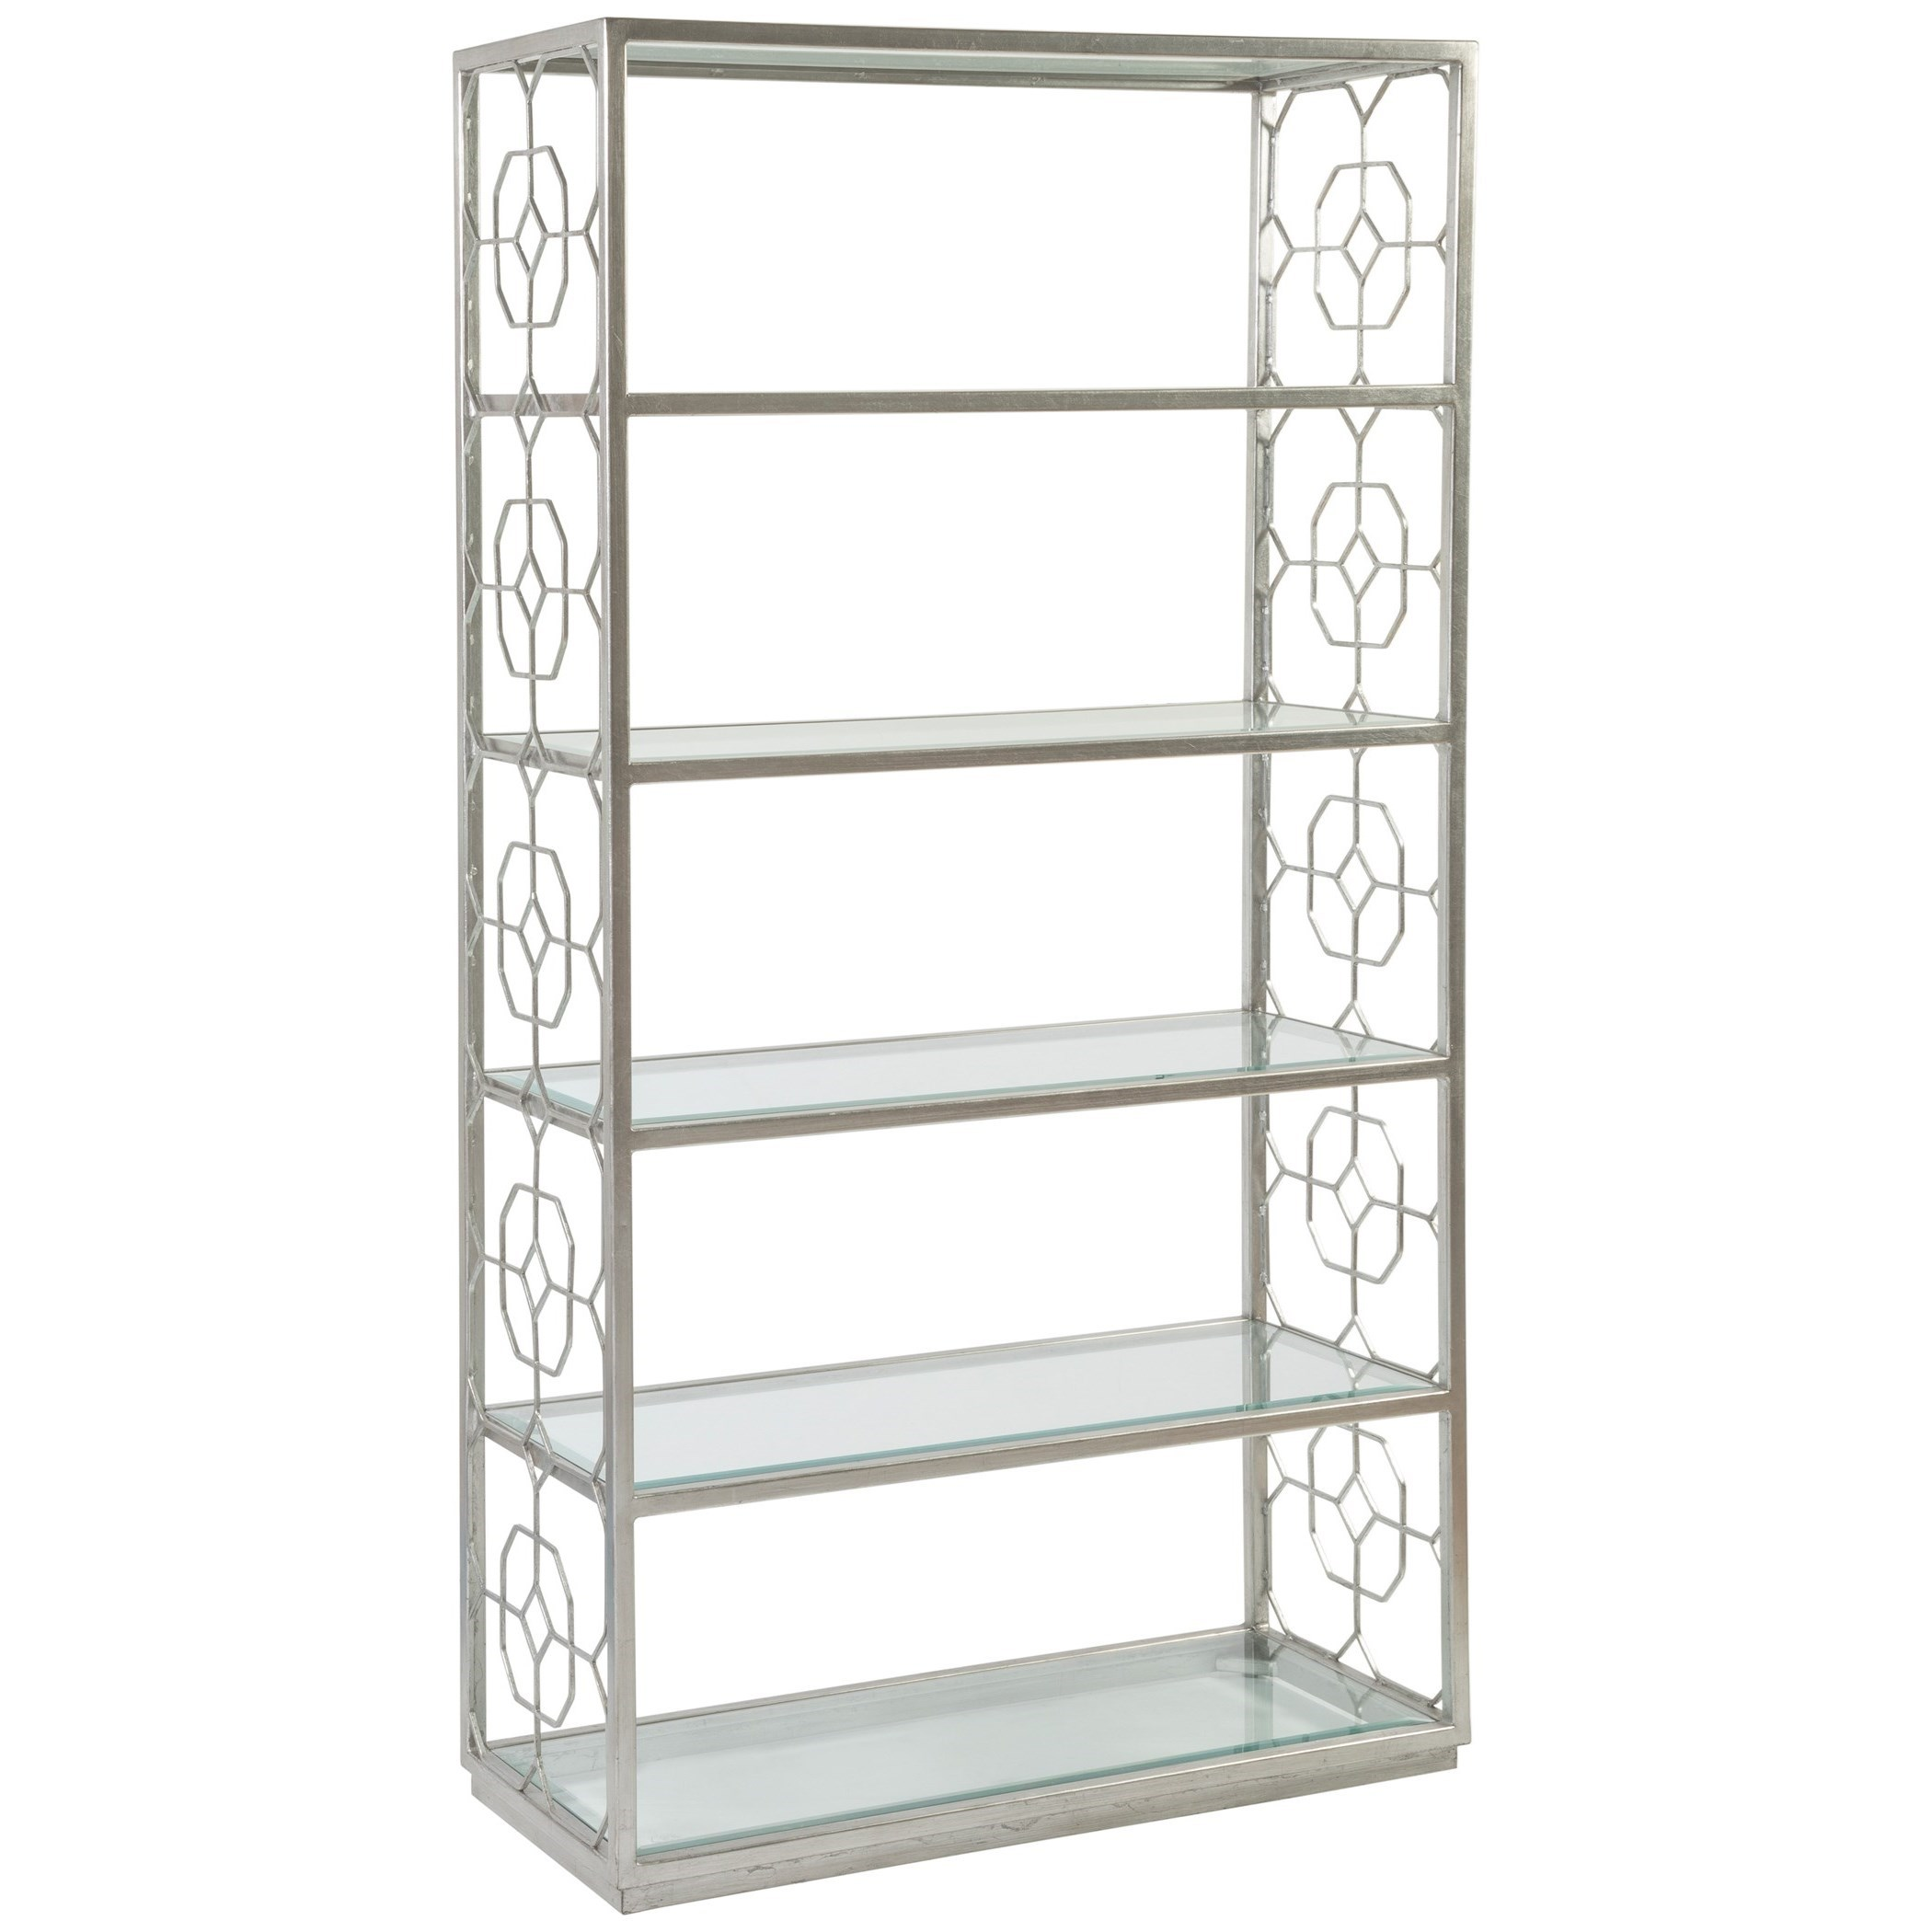 Metal Designs Honeycomb Etagere by Artistica at Baer's Furniture